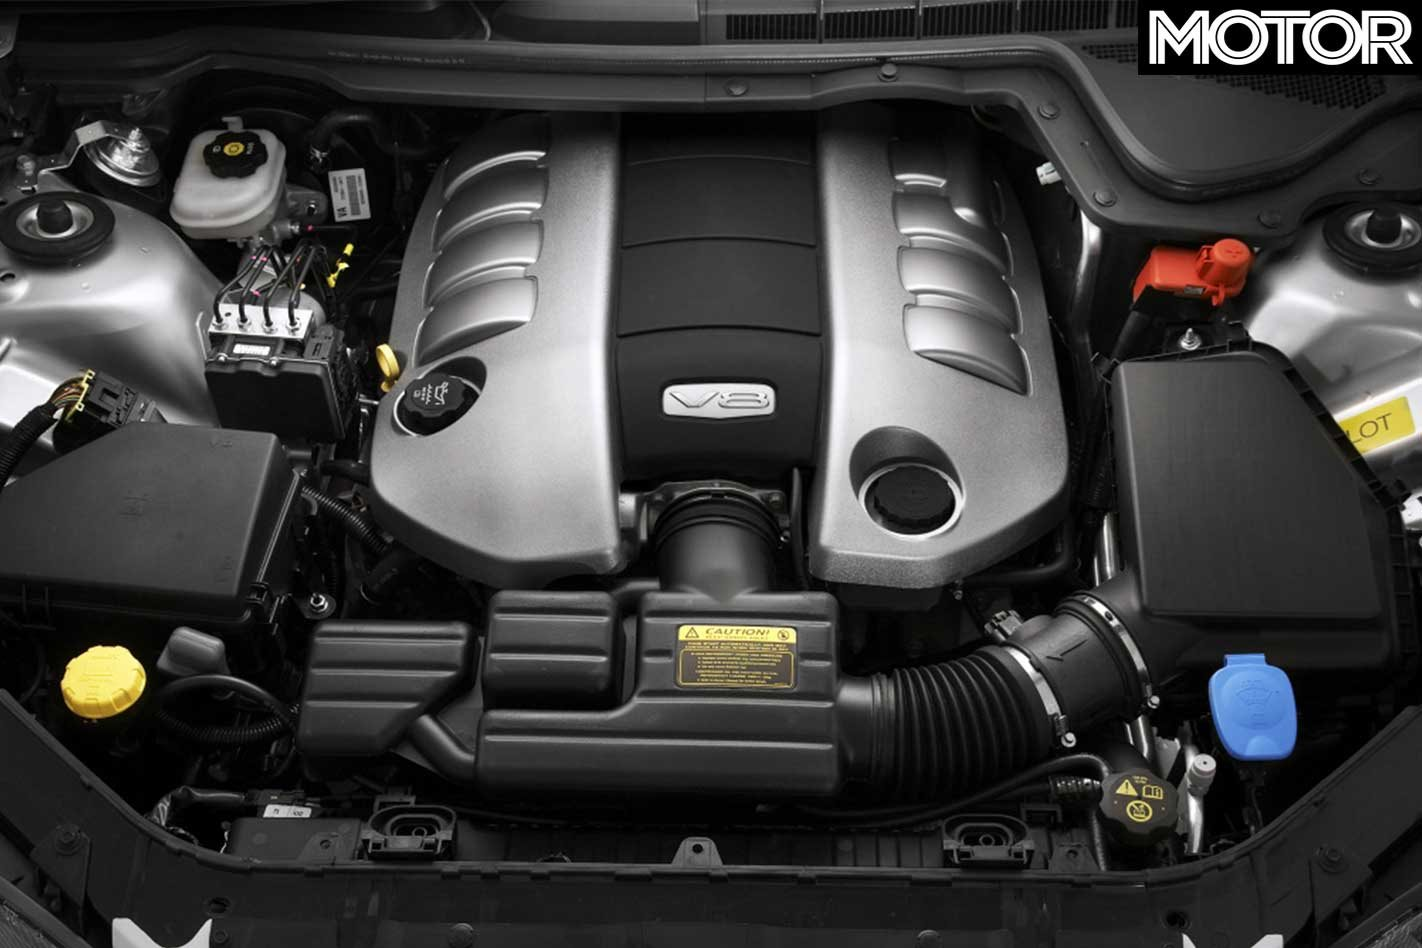 Afm Motor 2009 Silverado With Engine Diagram Holden Commodore Ss Review Classic